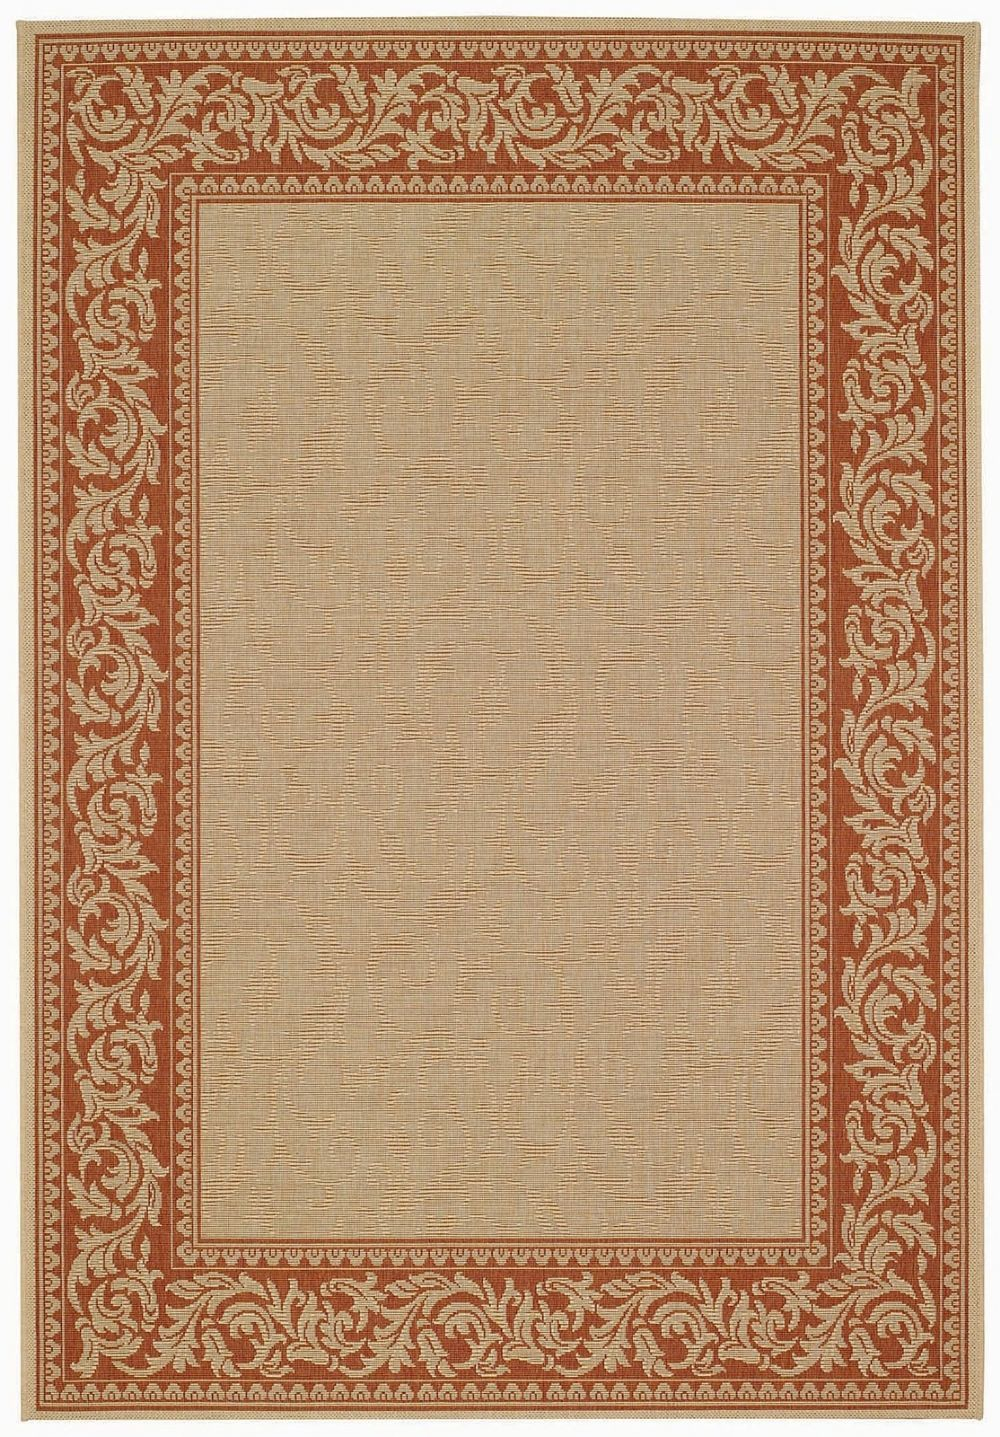 capel elsinore-scroll contemporary area rug collection